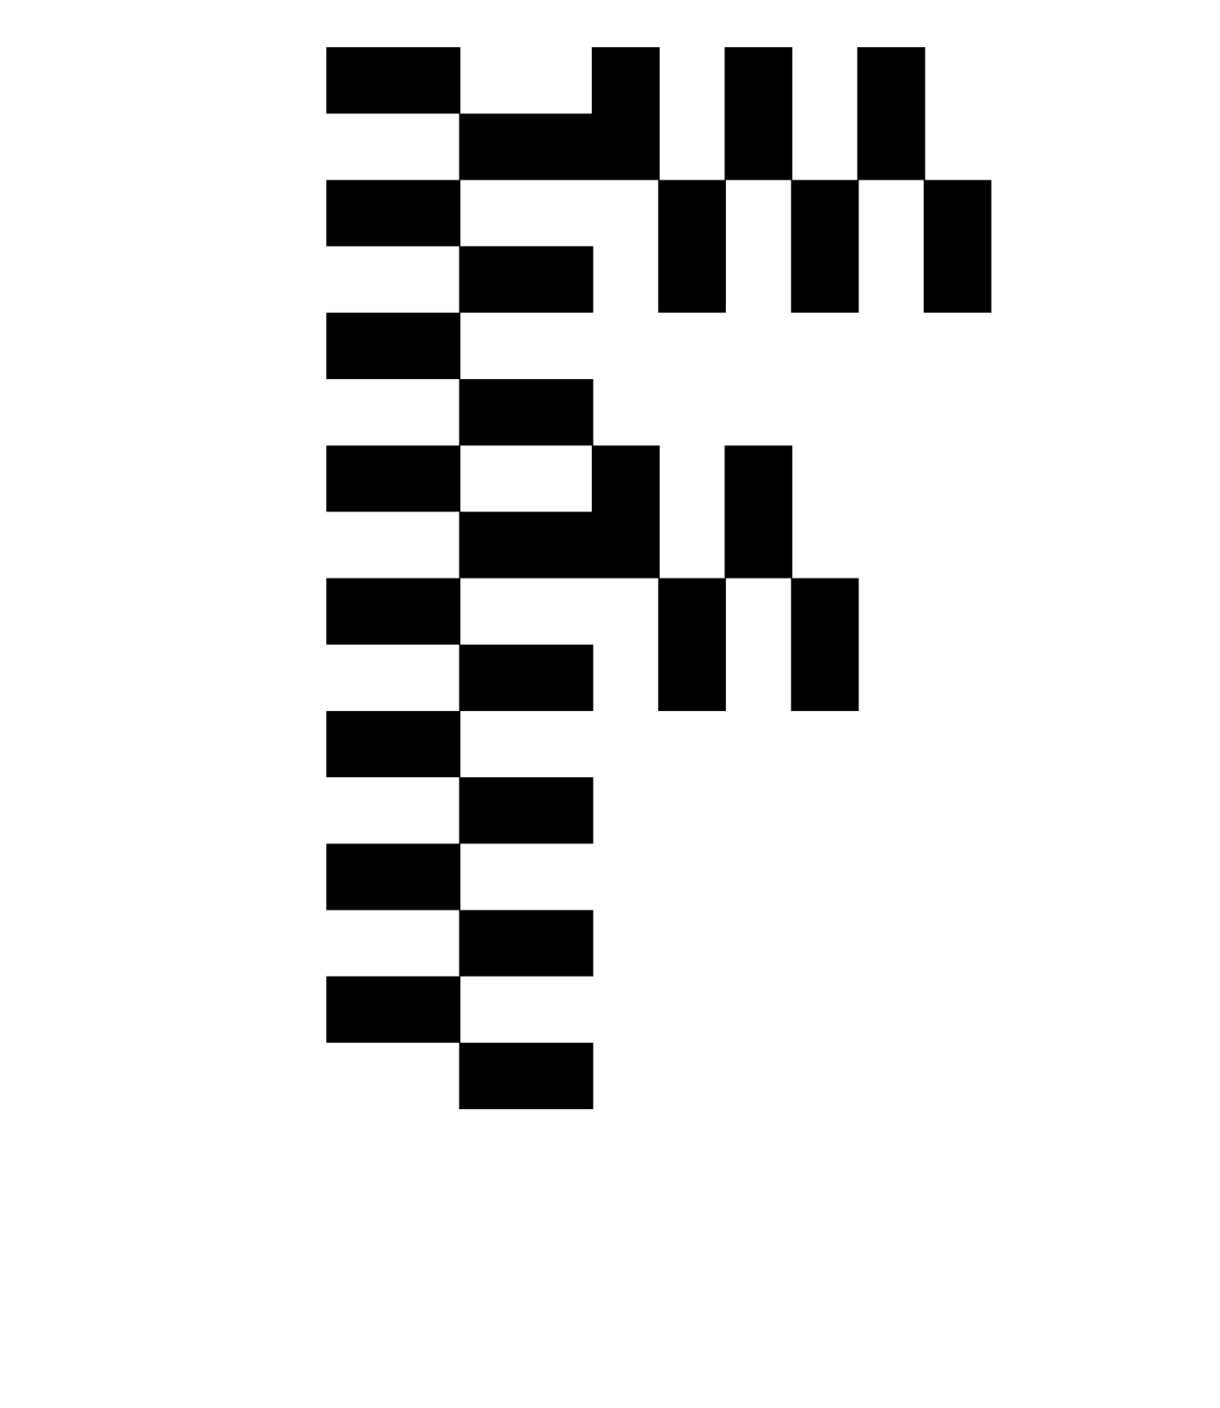 pattern-project-letters-05-1220x1407px